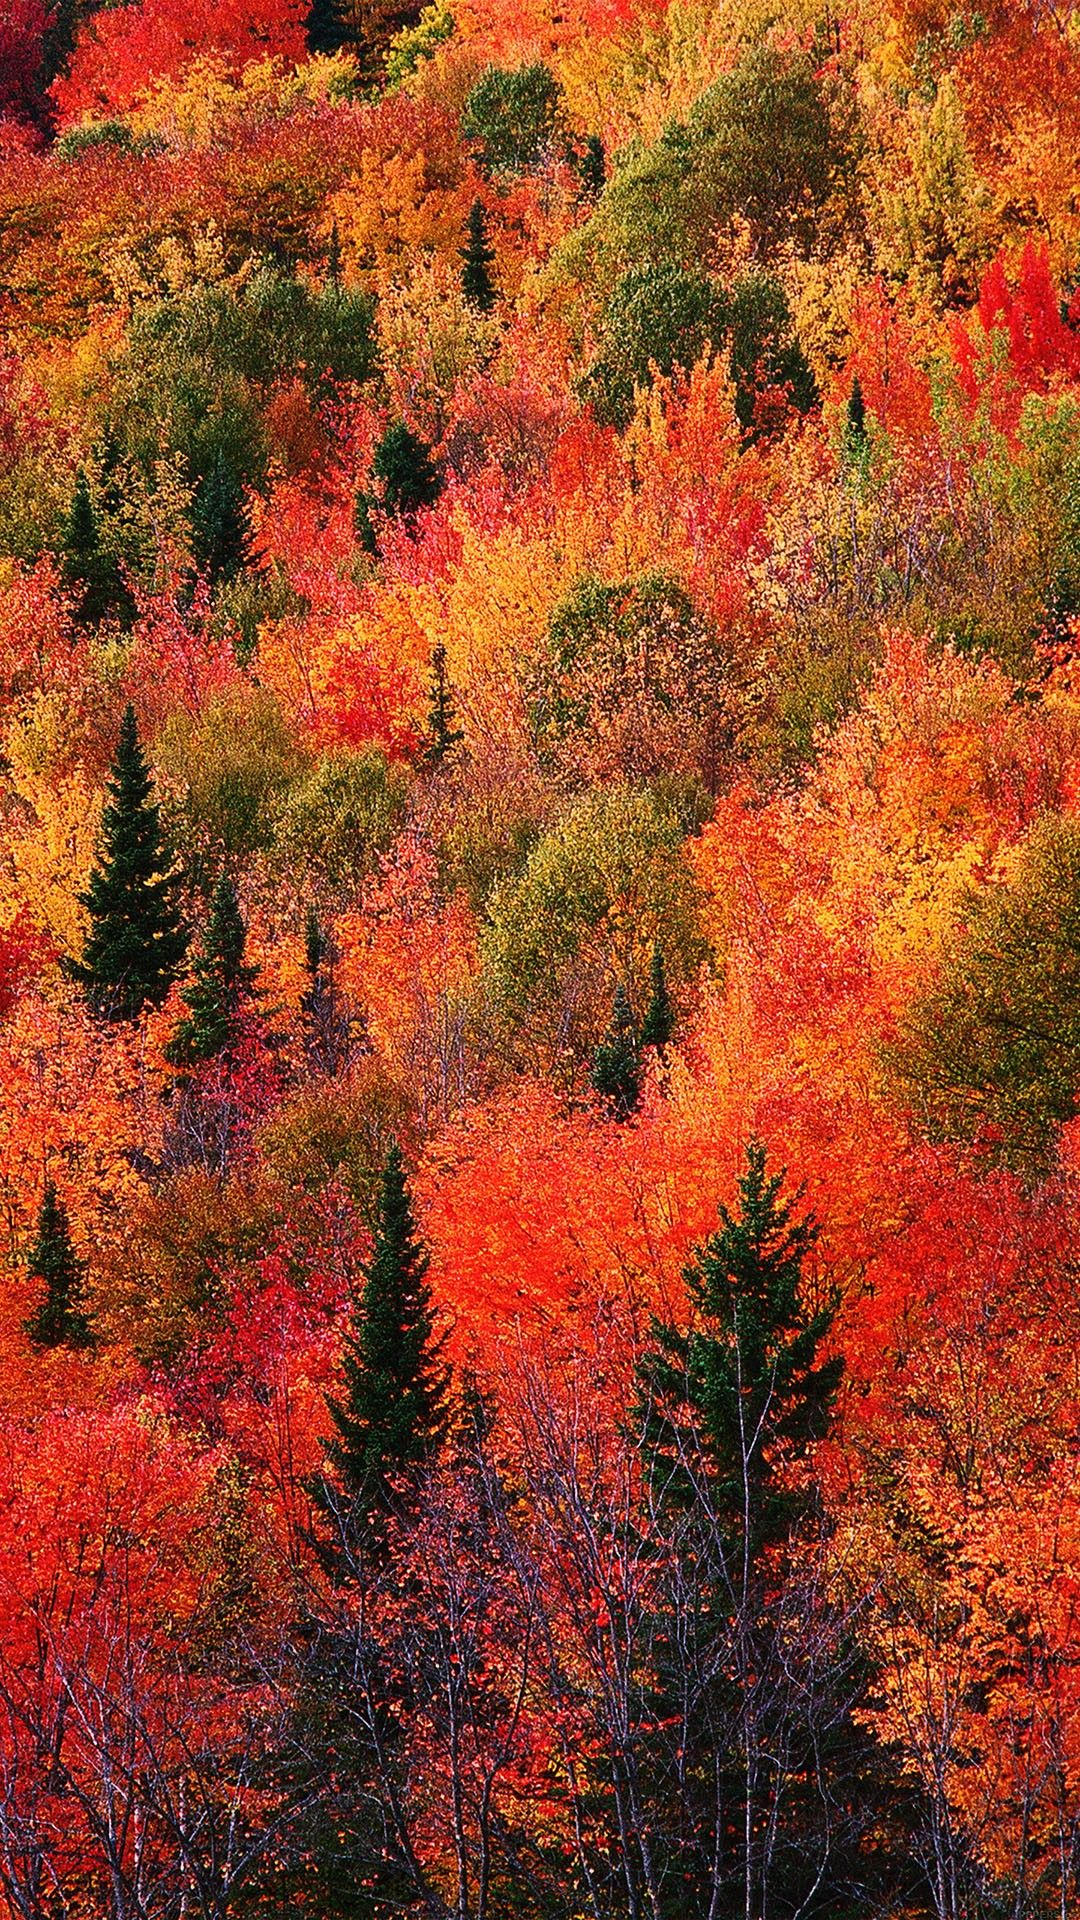 Fall Mountain Red Phone Wallpaper Lockscreen Hd 4k Android Ios Check More At Https Phonewallp Com F Fall Wallpaper Autumn Wallpaper Hd Android Wallpaper Fall